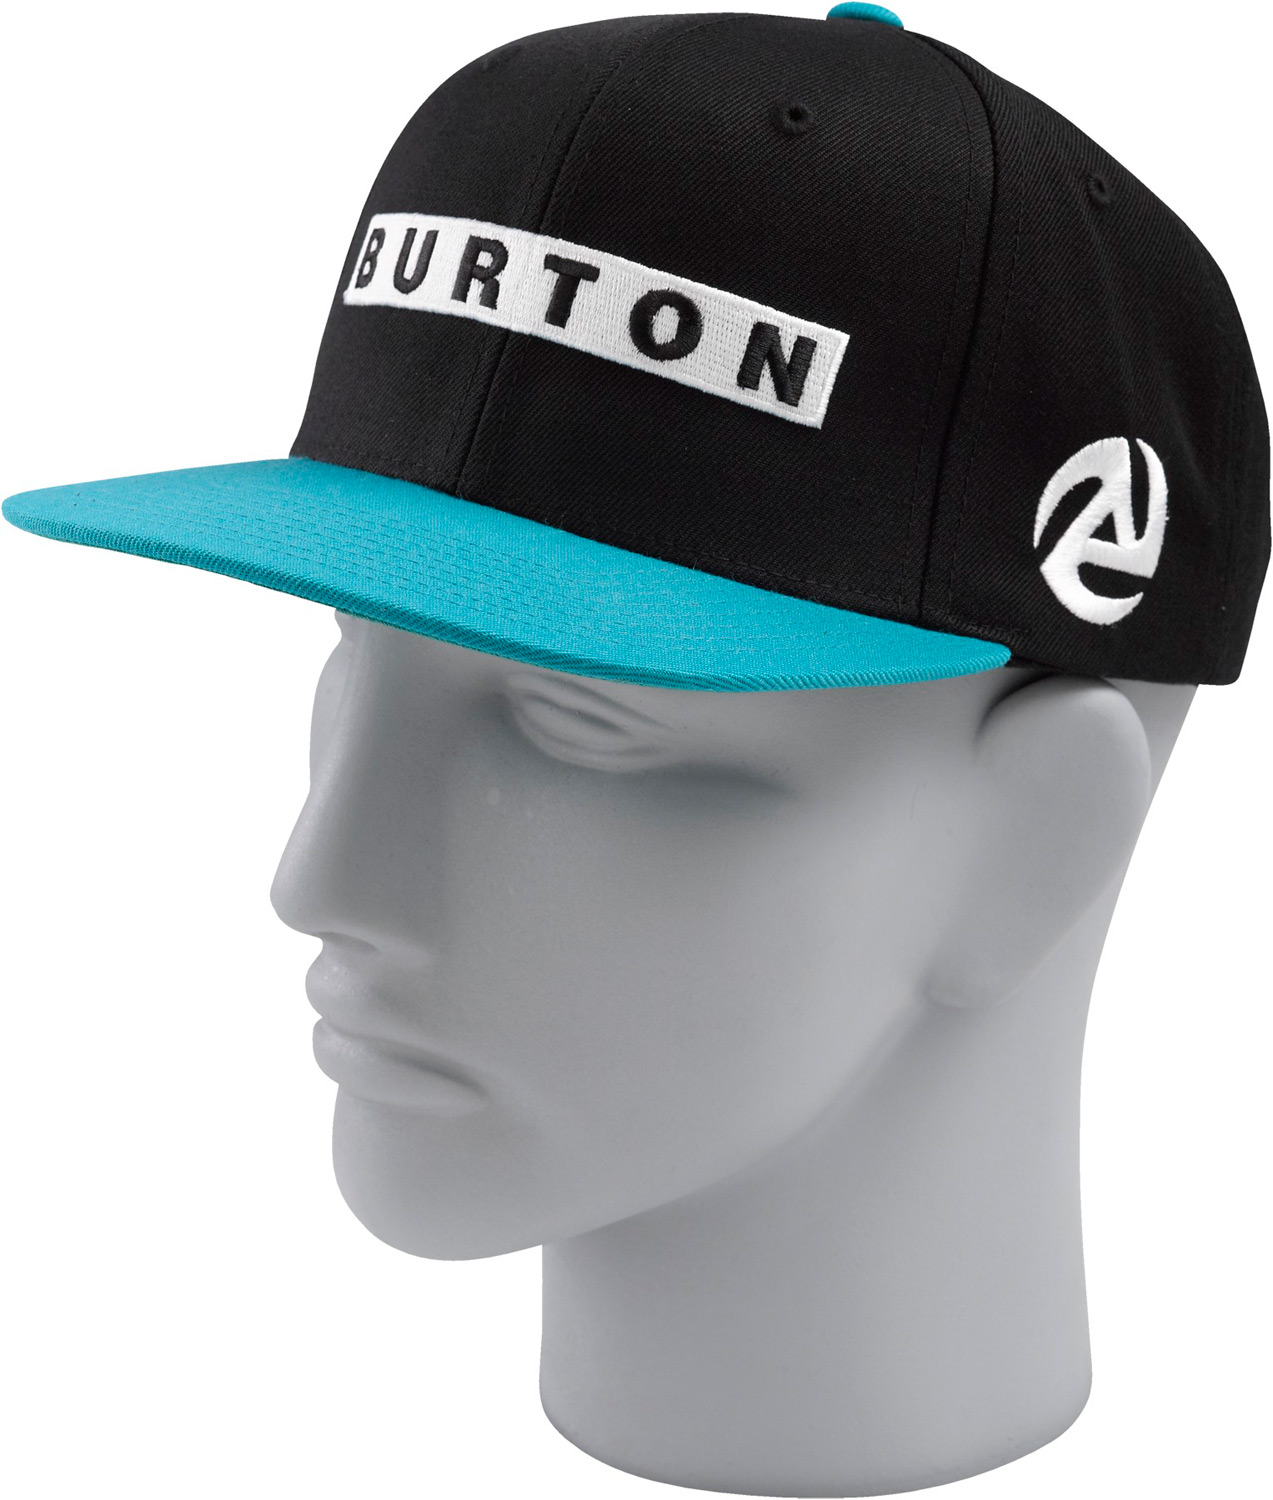 Snowboard Key Features of the Burton Barred Cap: 100% Cotton [Stout White Pinstripe Colorway] 80% Acrylic, 20% Wool [Royals, Bitters, and True Black Colorways] Snap Back Bar Embroidery Flat Visor - $15.95